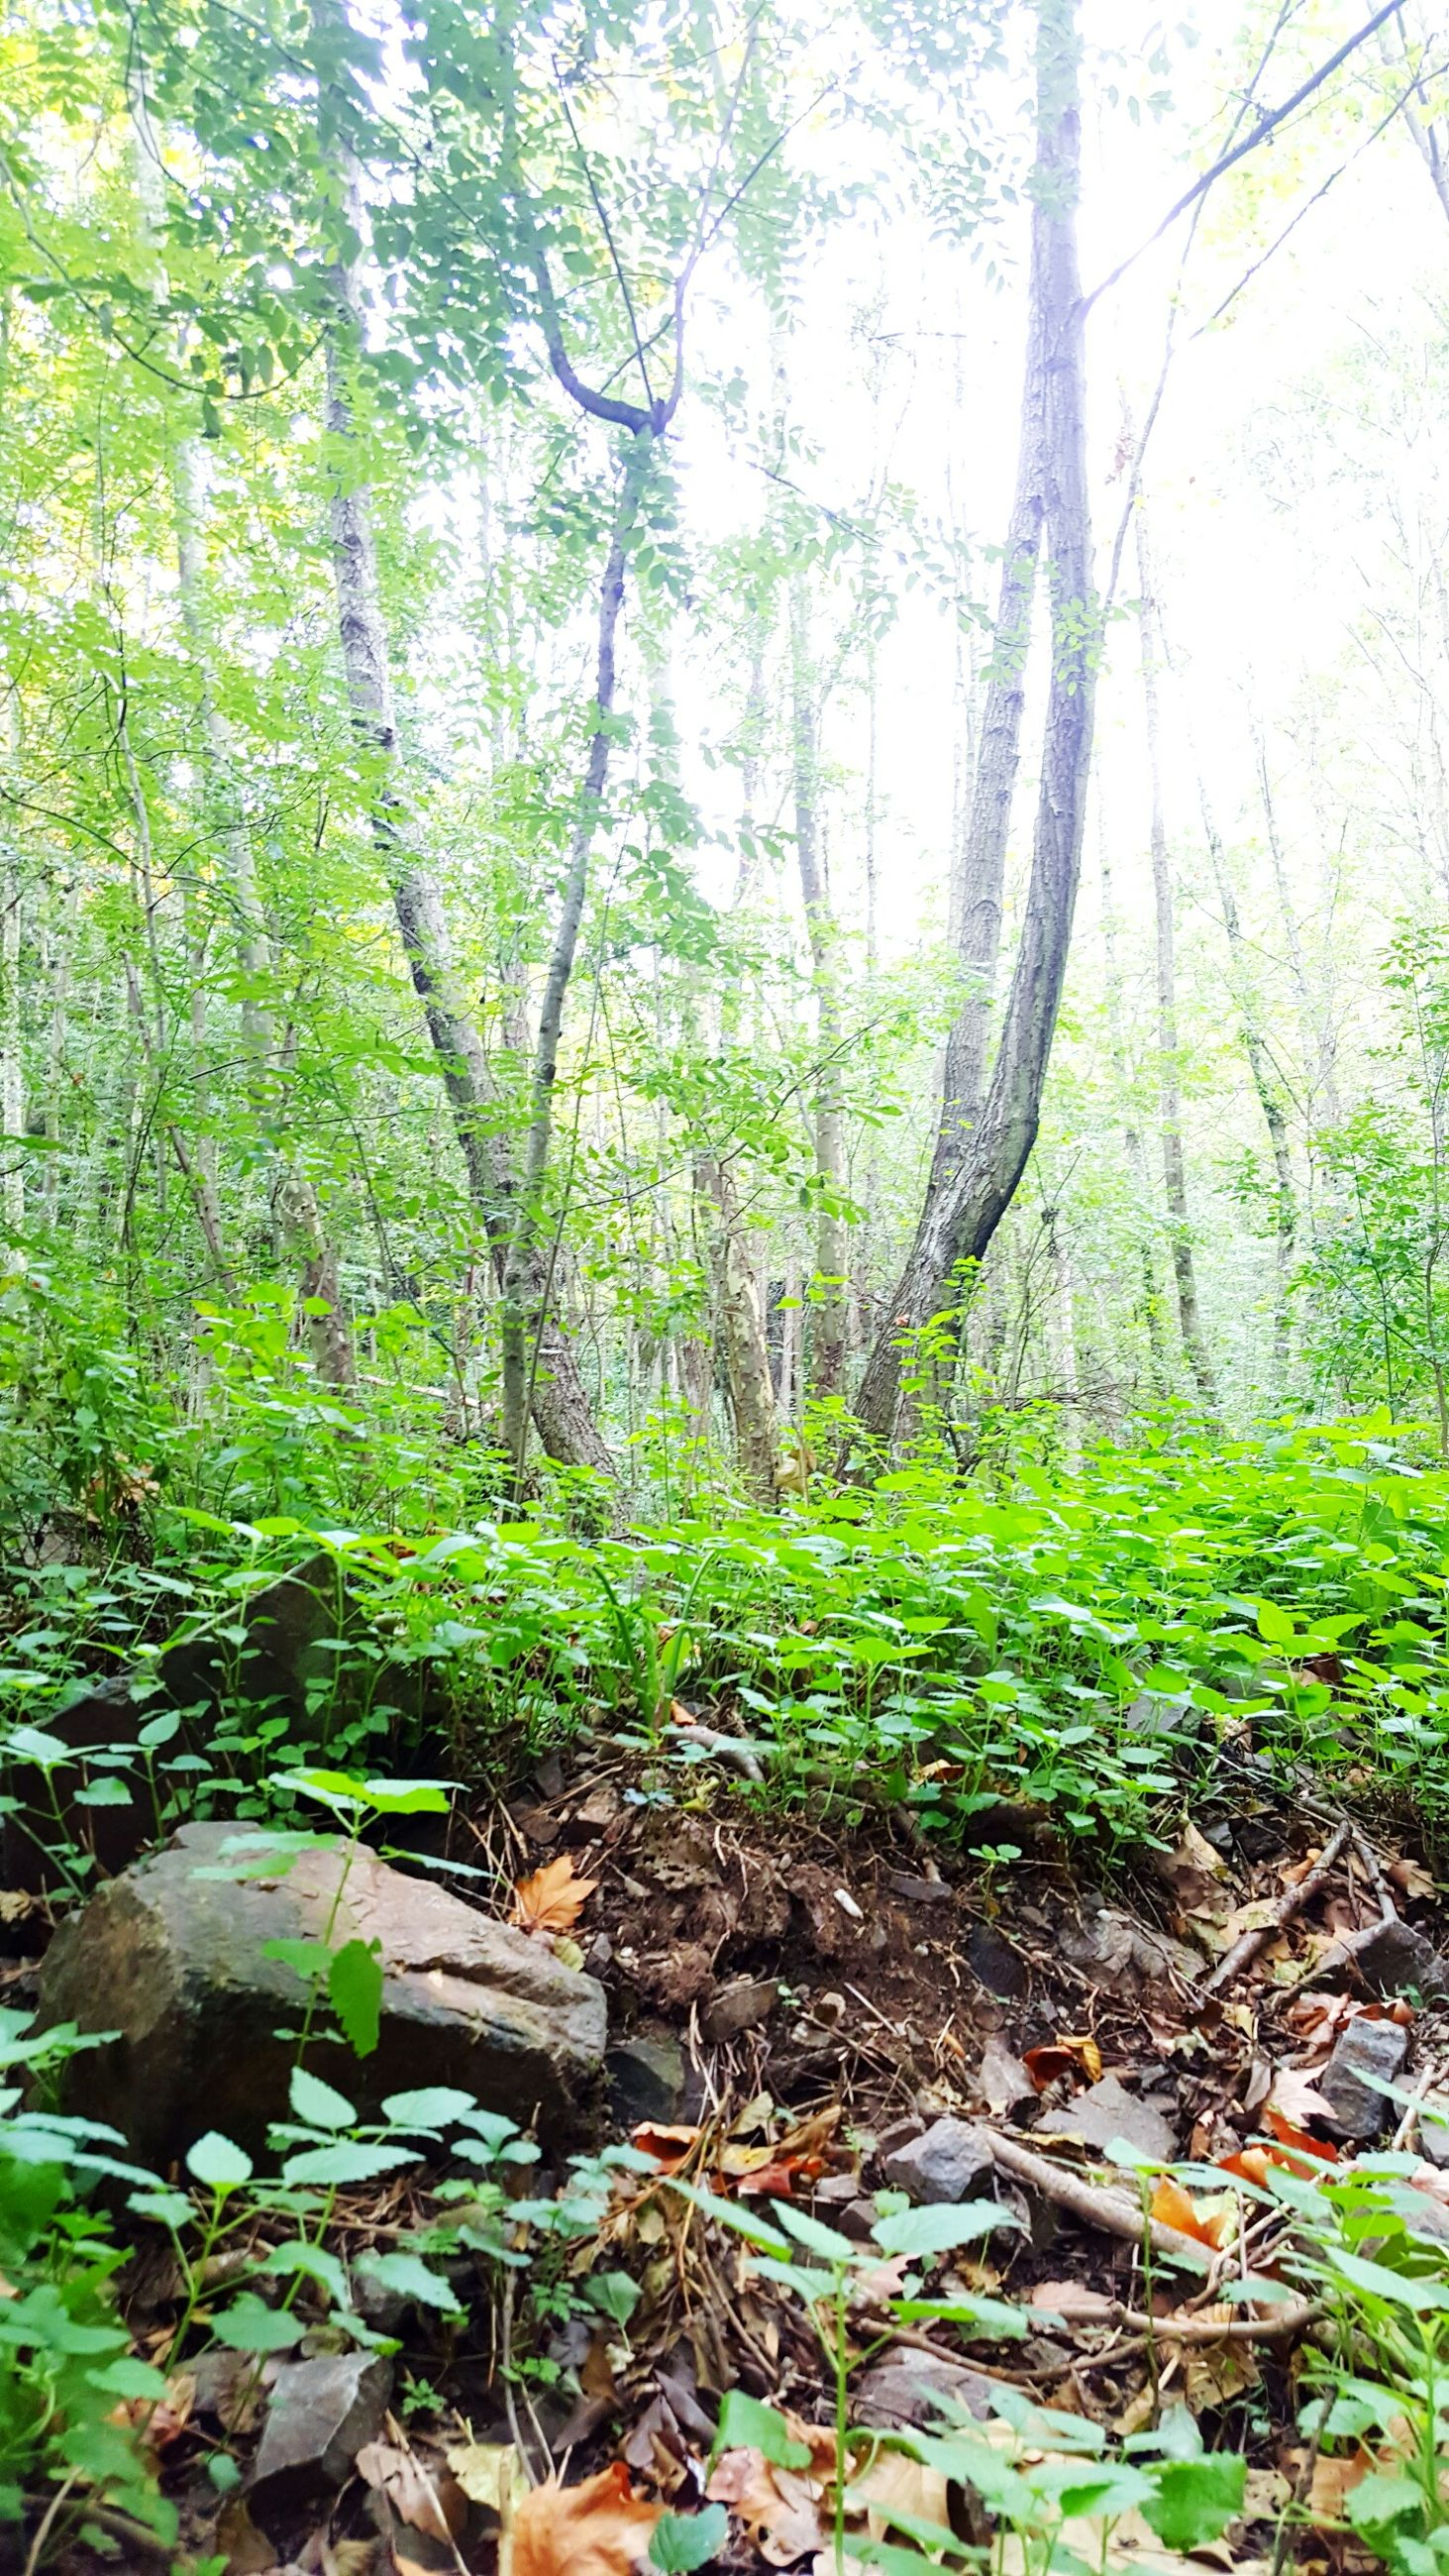 tree, growth, green color, forest, tranquility, nature, tree trunk, plant, beauty in nature, tranquil scene, scenics, moss, lush foliage, leaf, branch, woodland, green, sunlight, day, growing